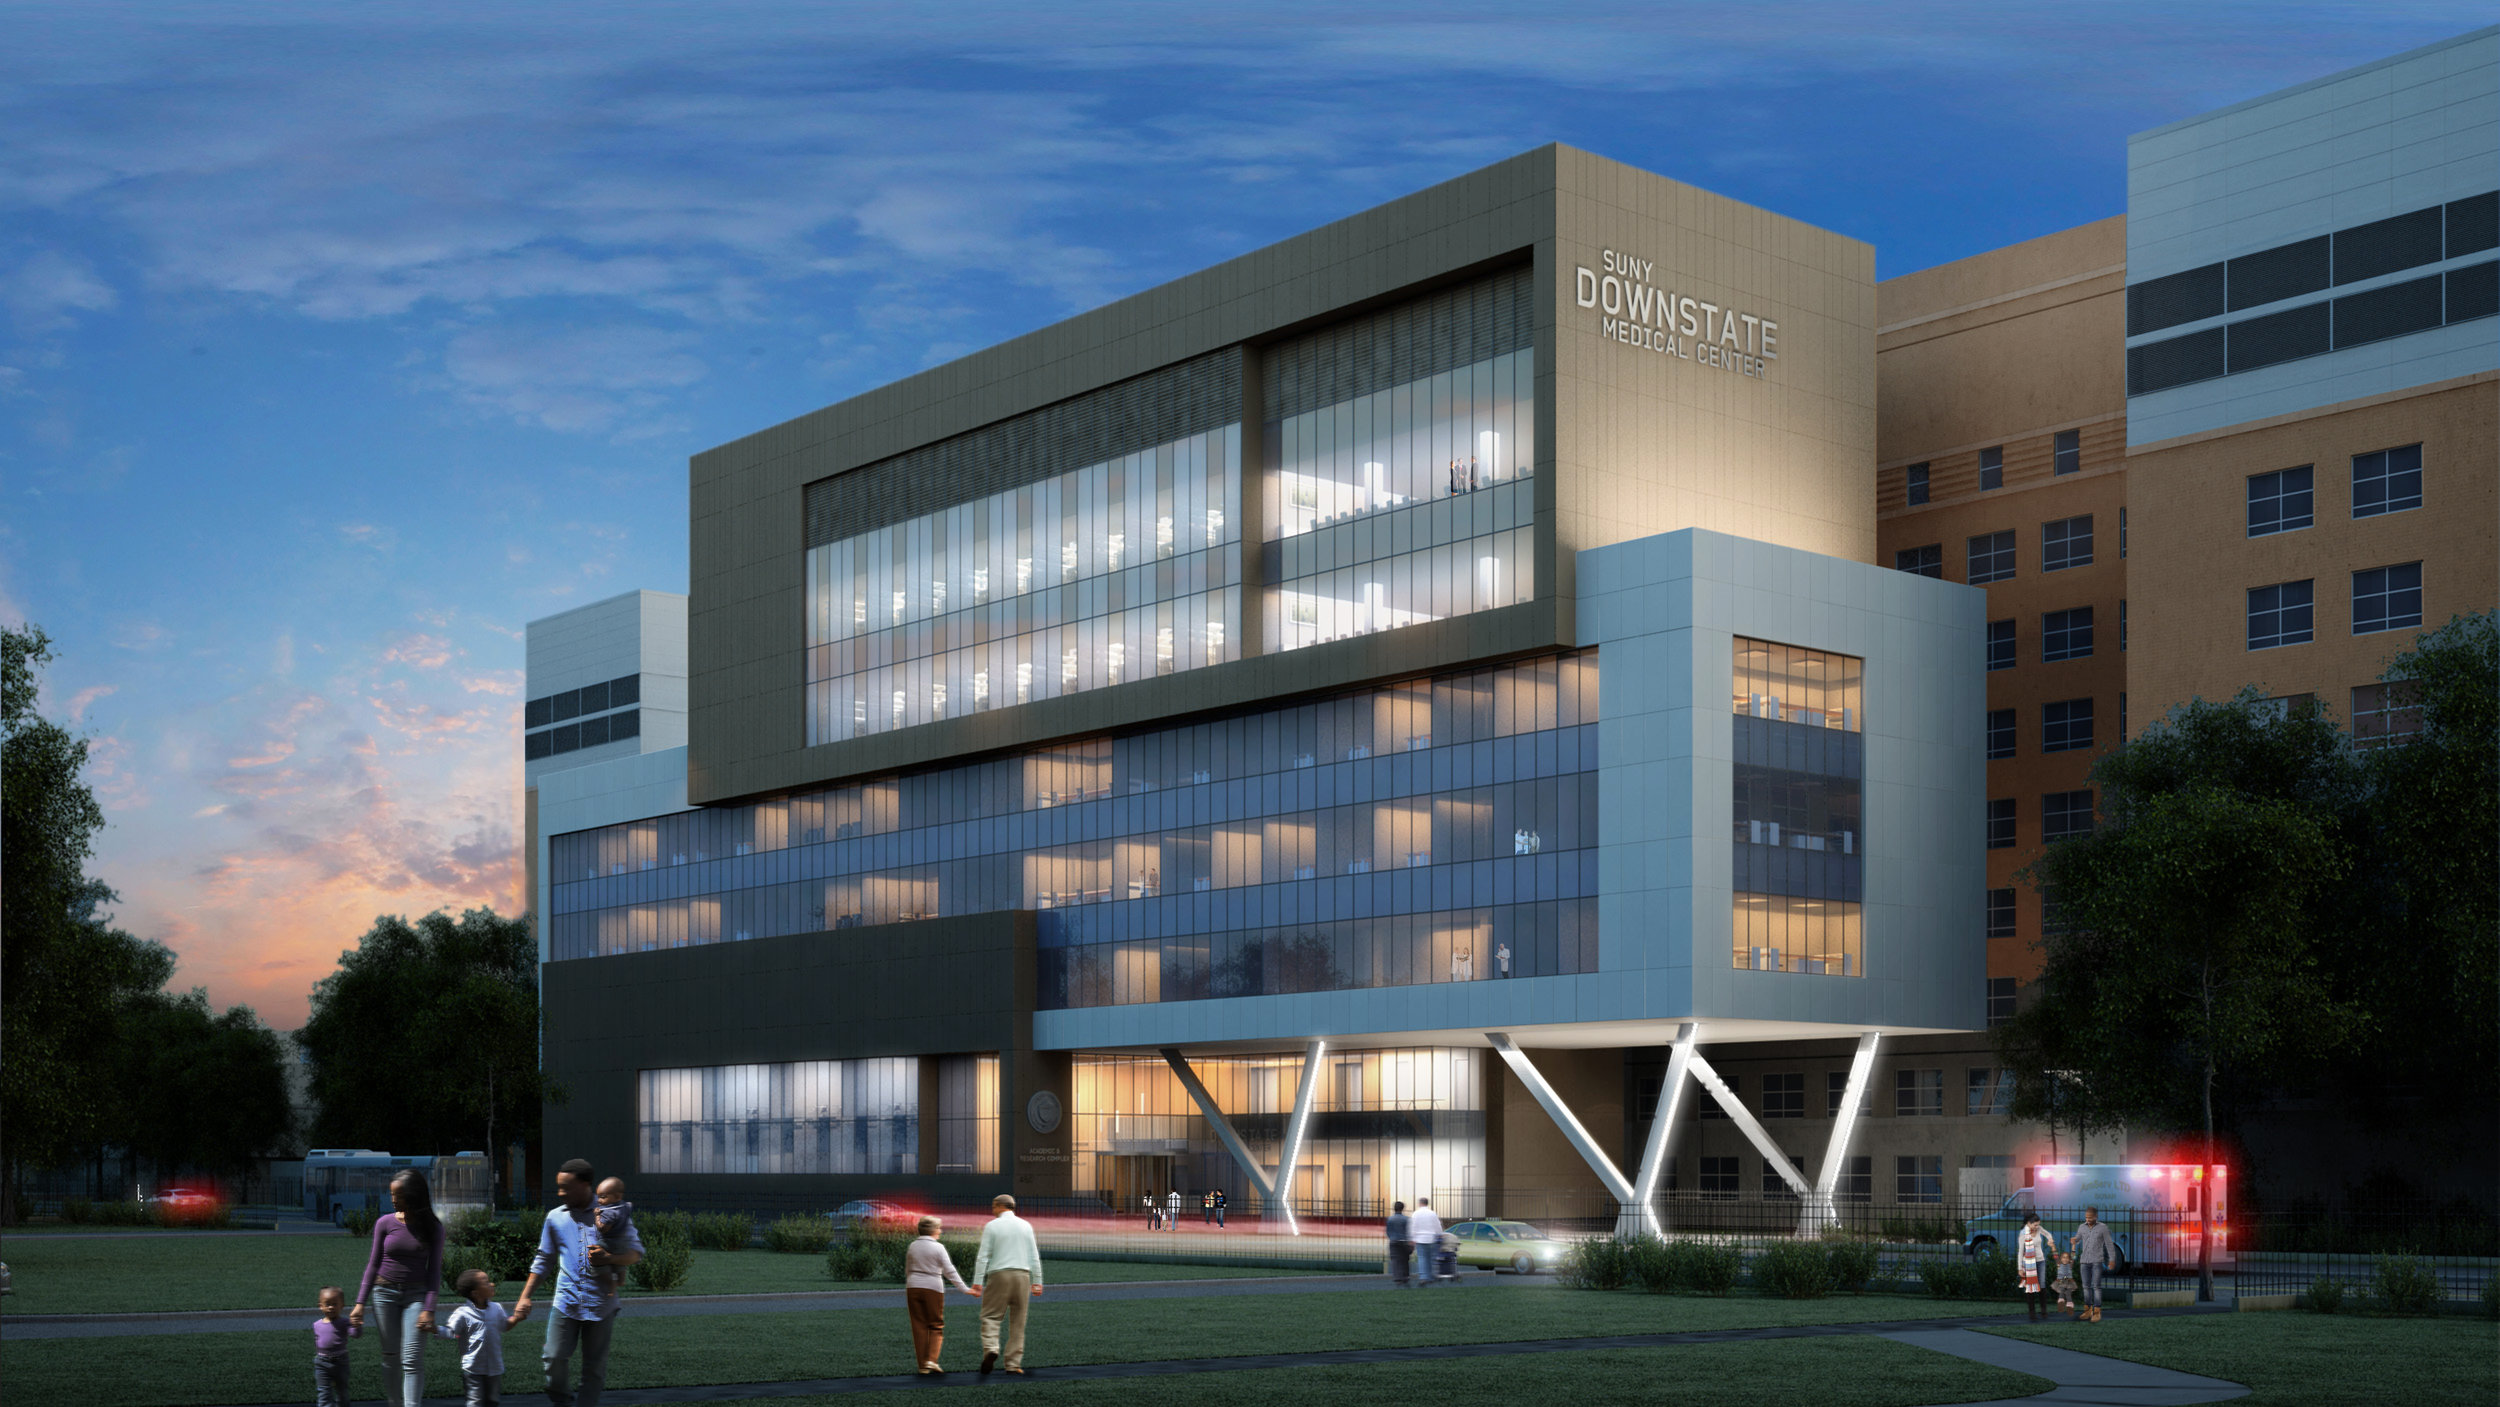 SUNY Downstate Medical Center - Medical Building Renovation